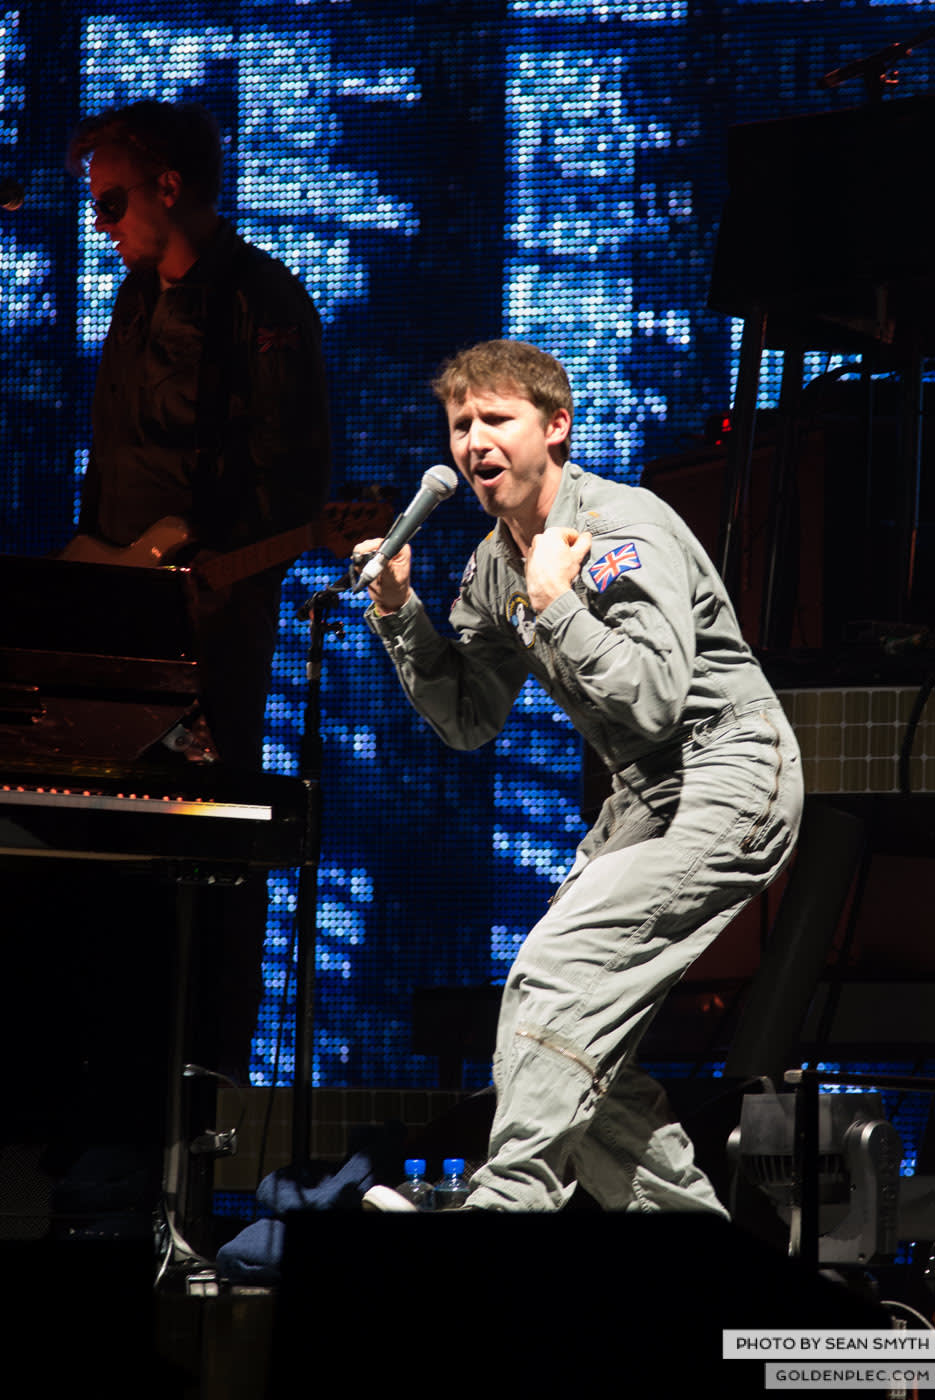 james-blunt-at-3arena-by-sean-smyth-20-11-14-12-of-29